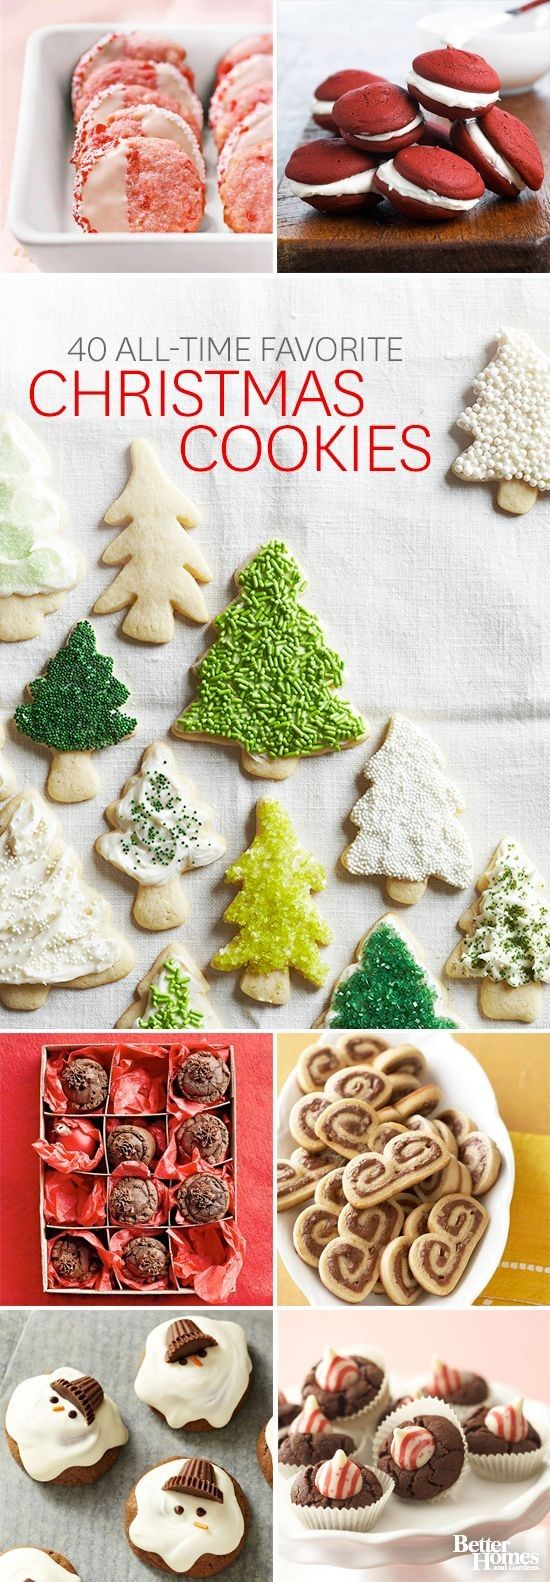 Christmas Cookies  http://thewhoot.com.au/media/slider/christmas-recipes